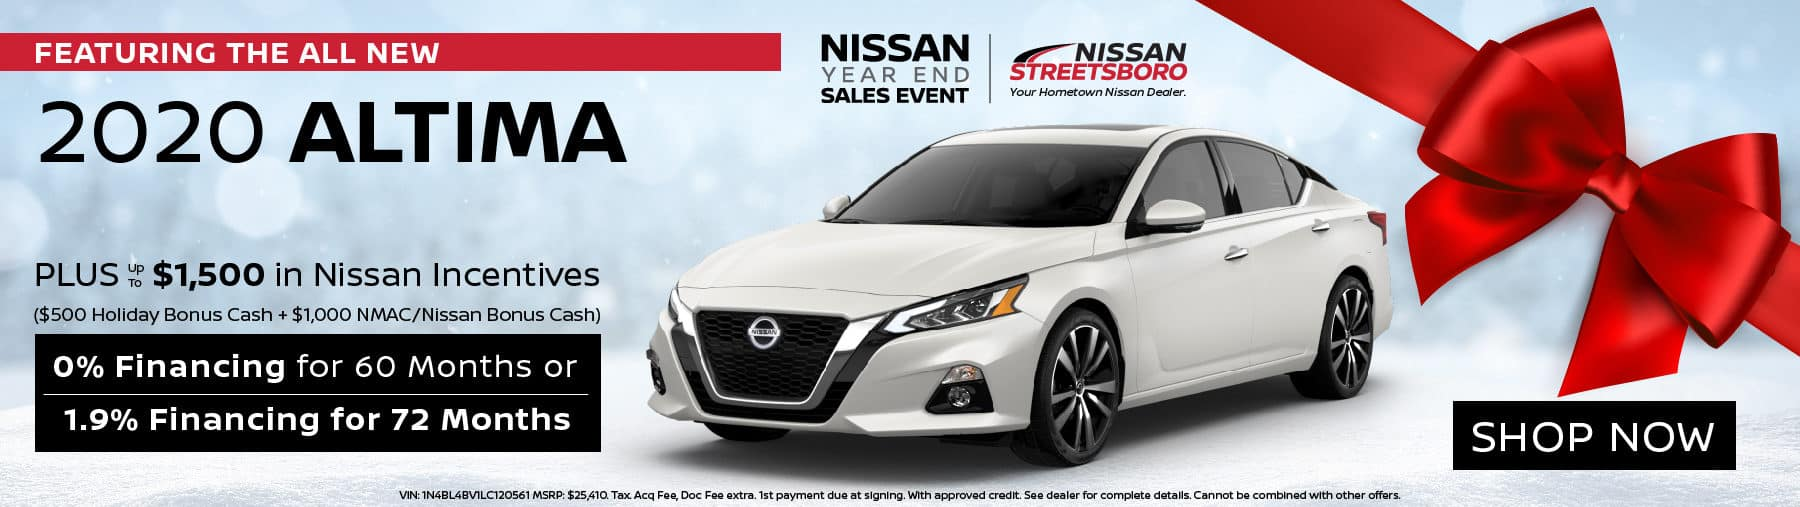 2020 Nissan Altima Incentives